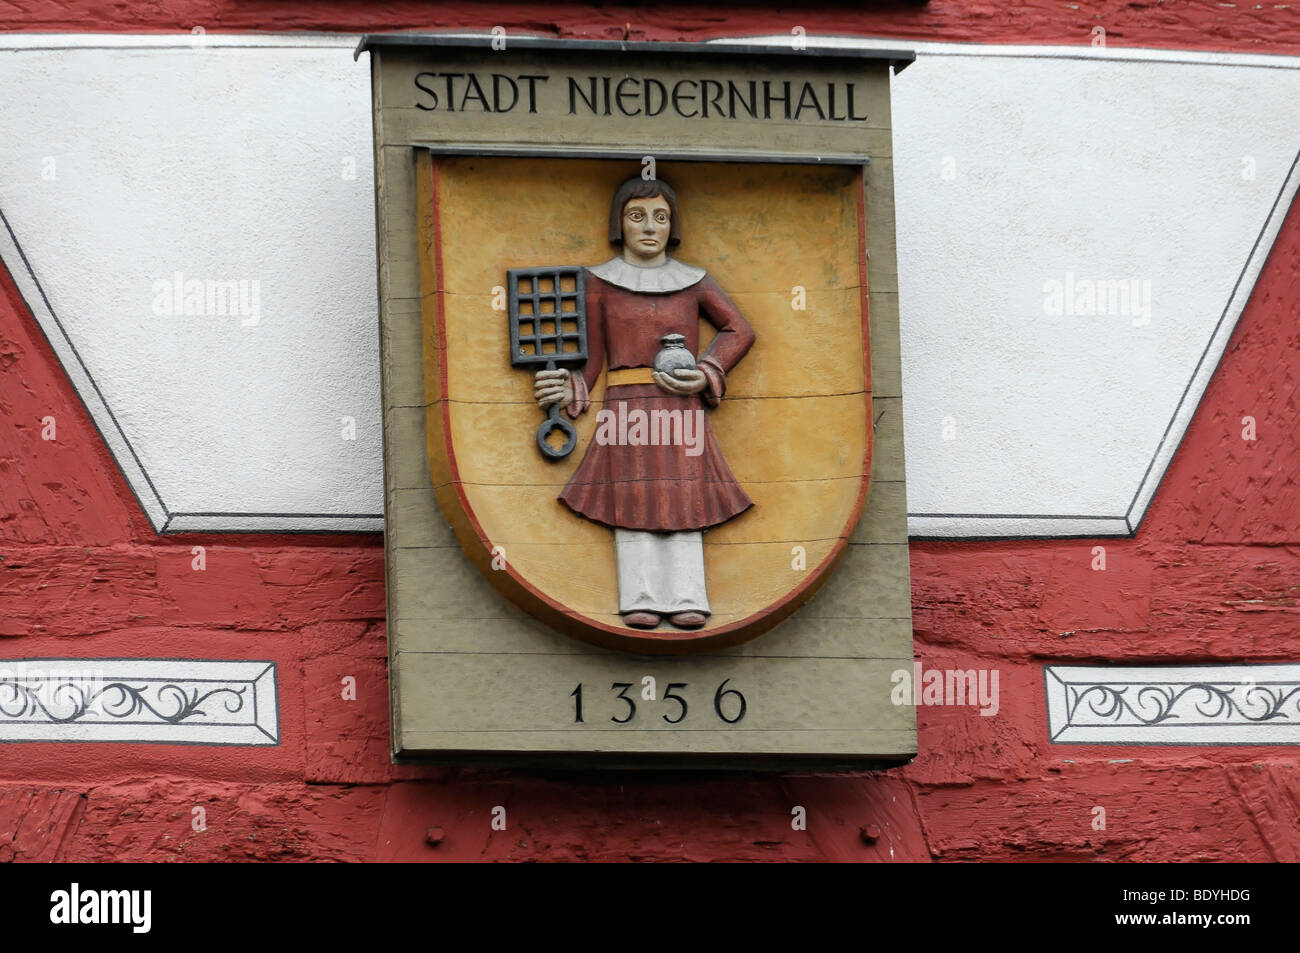 Sign at the Town Hall, Niedernhall, Baden-Wuerttemberg, Germany, Europe - Stock Image